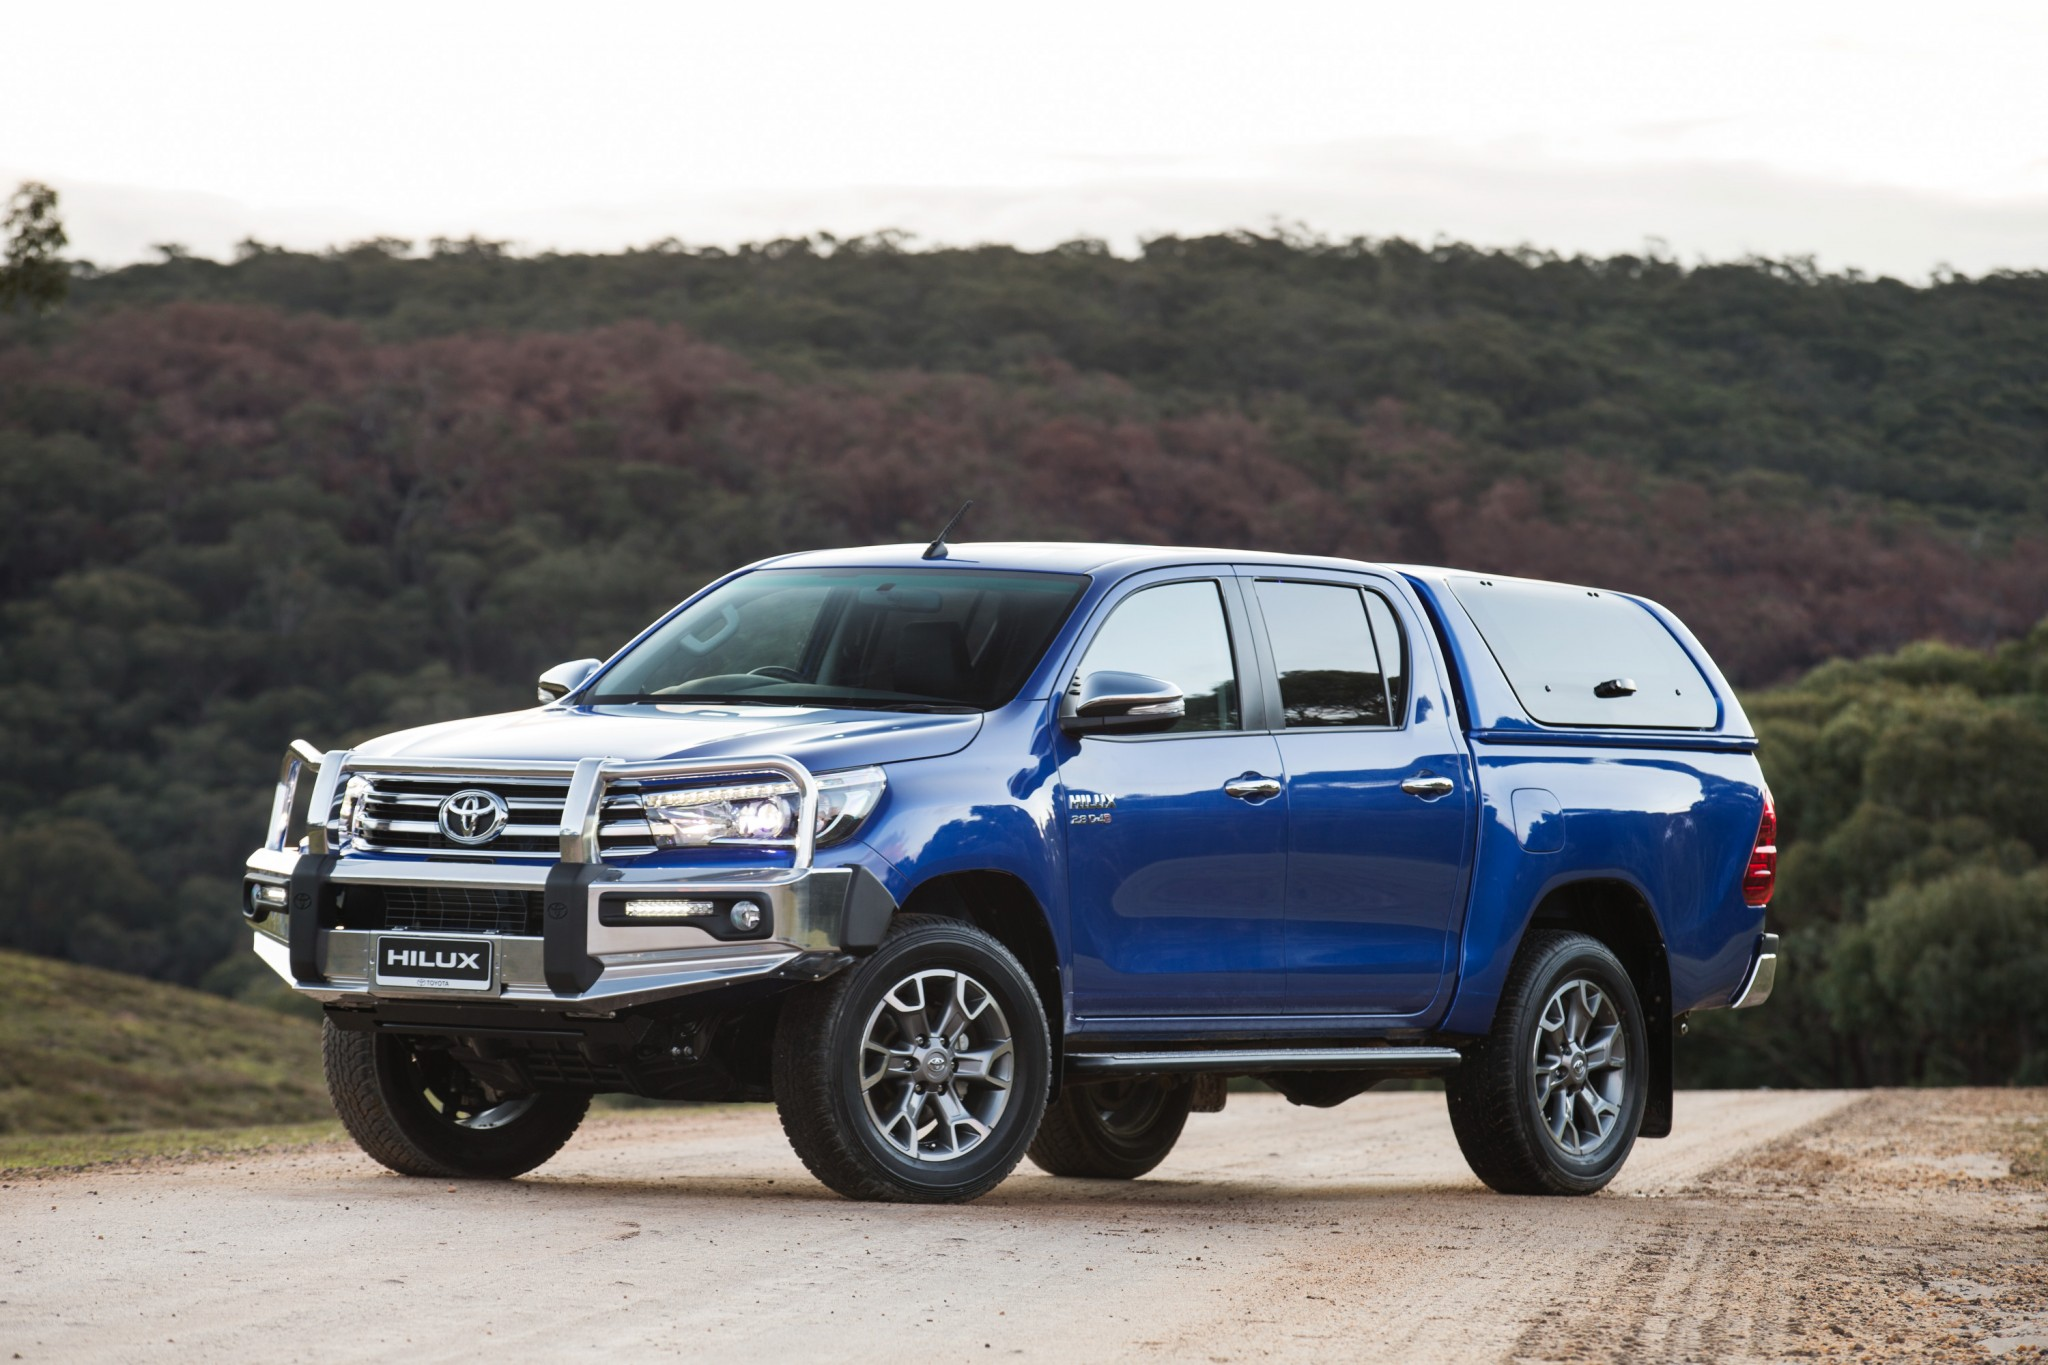 2016 toyota hilux official accessories range announced | practical